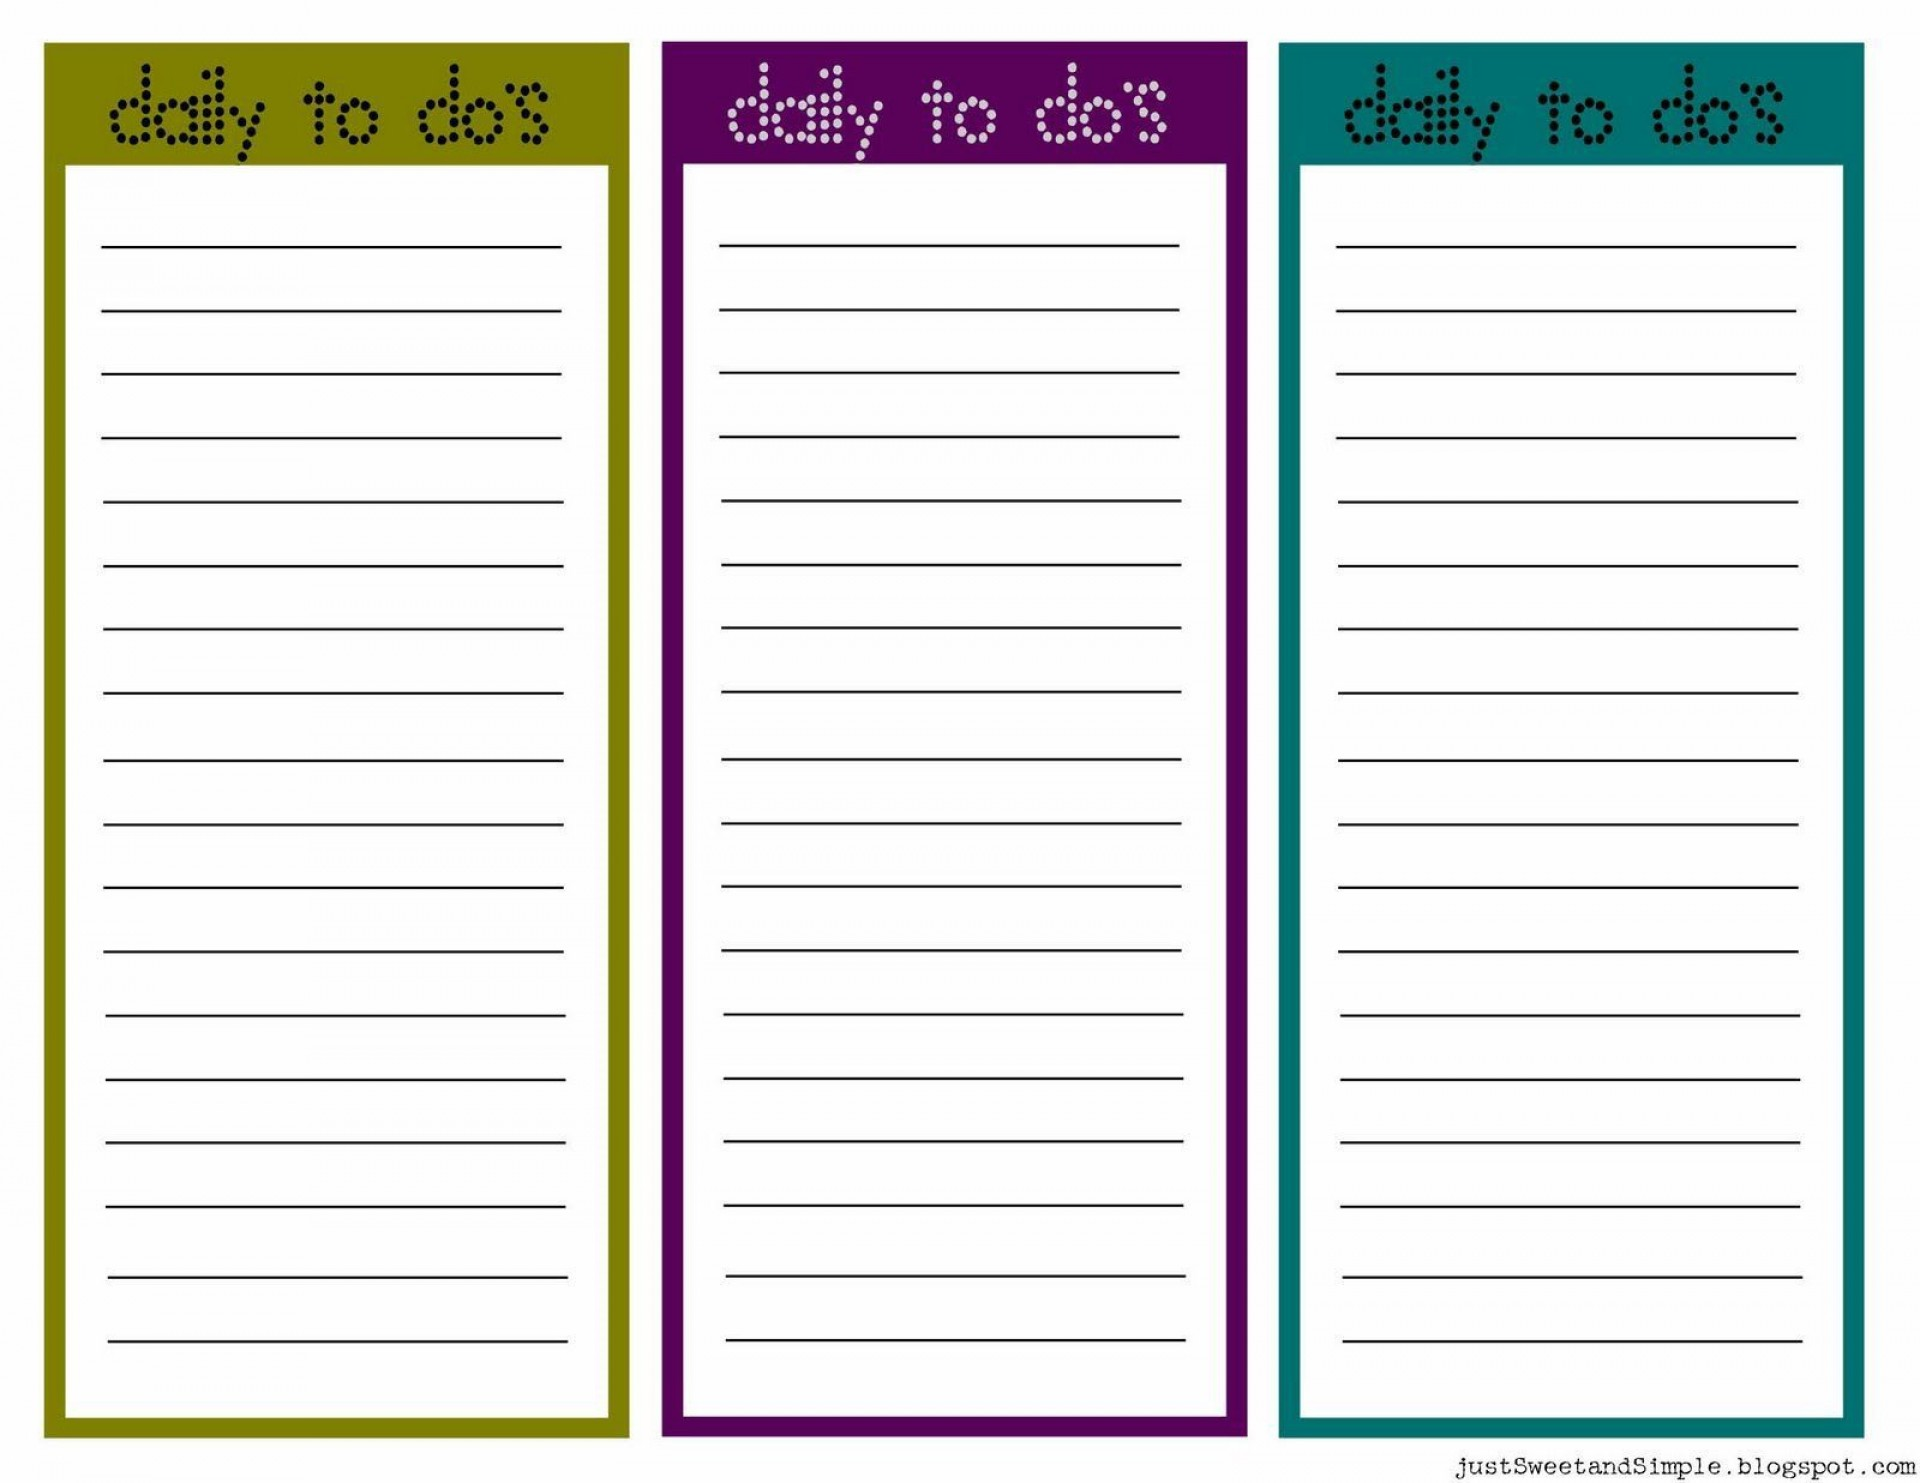 002 Breathtaking Daily To Do List Template High Resolution  Templates Free1920